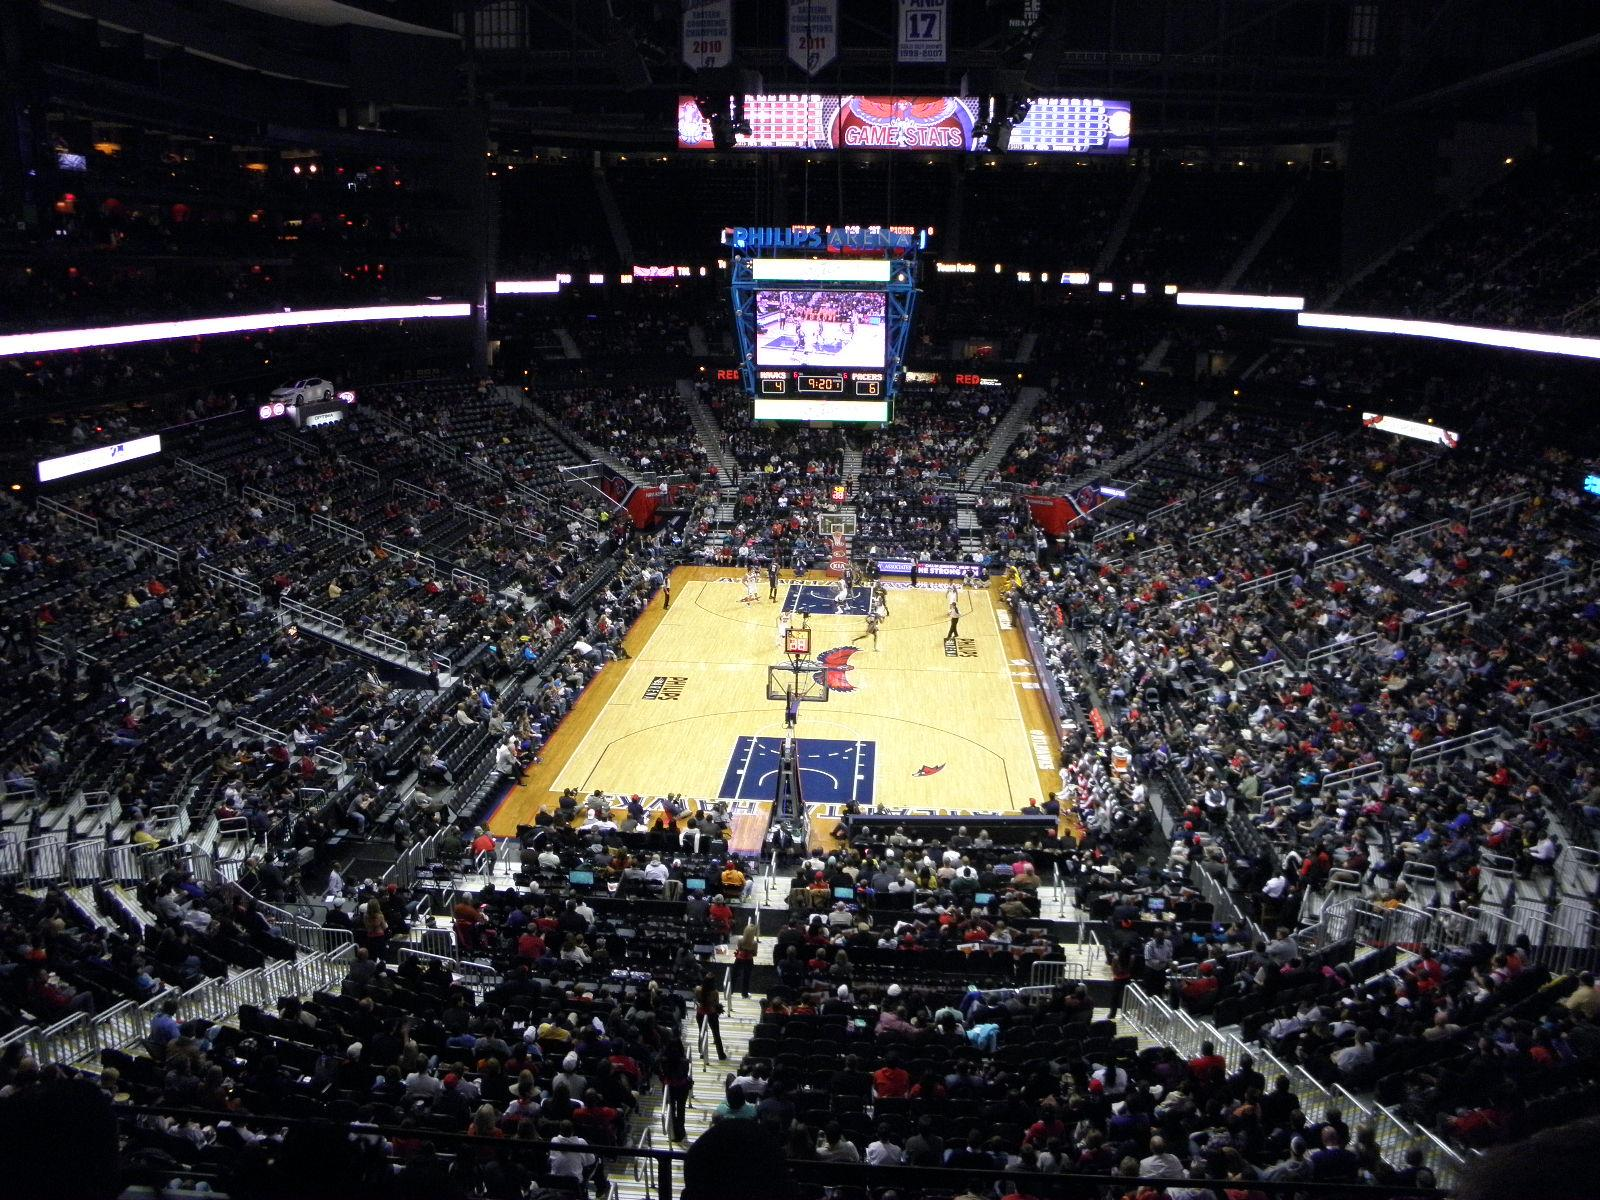 Spurs 141119 moreover Pelicans Hawks Postgame Quotes Locker Room furthermore Broadbent Arena Seating Chart also 513551163730057432 further 0506 SeatingChart. on atlanta hawks 3d seating chart